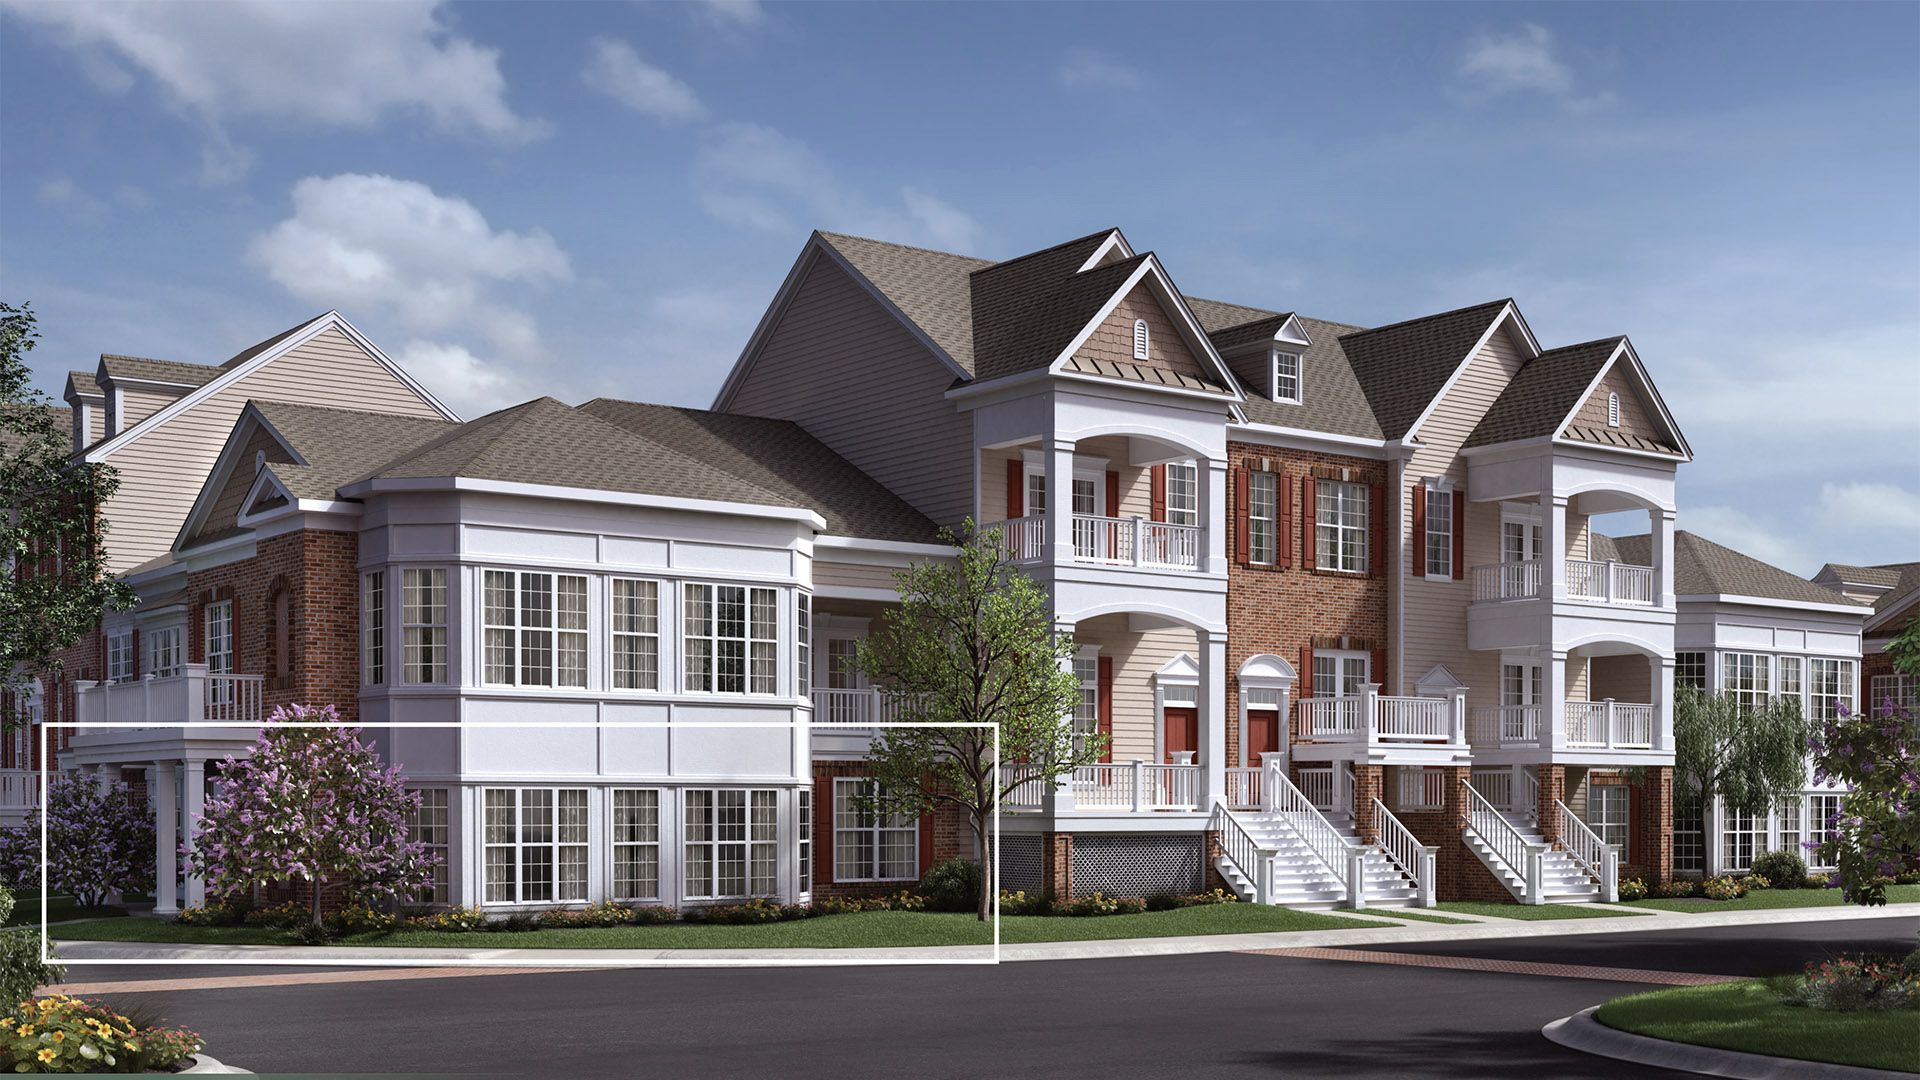 Brier creek country club cottages collection the for Elite home designs